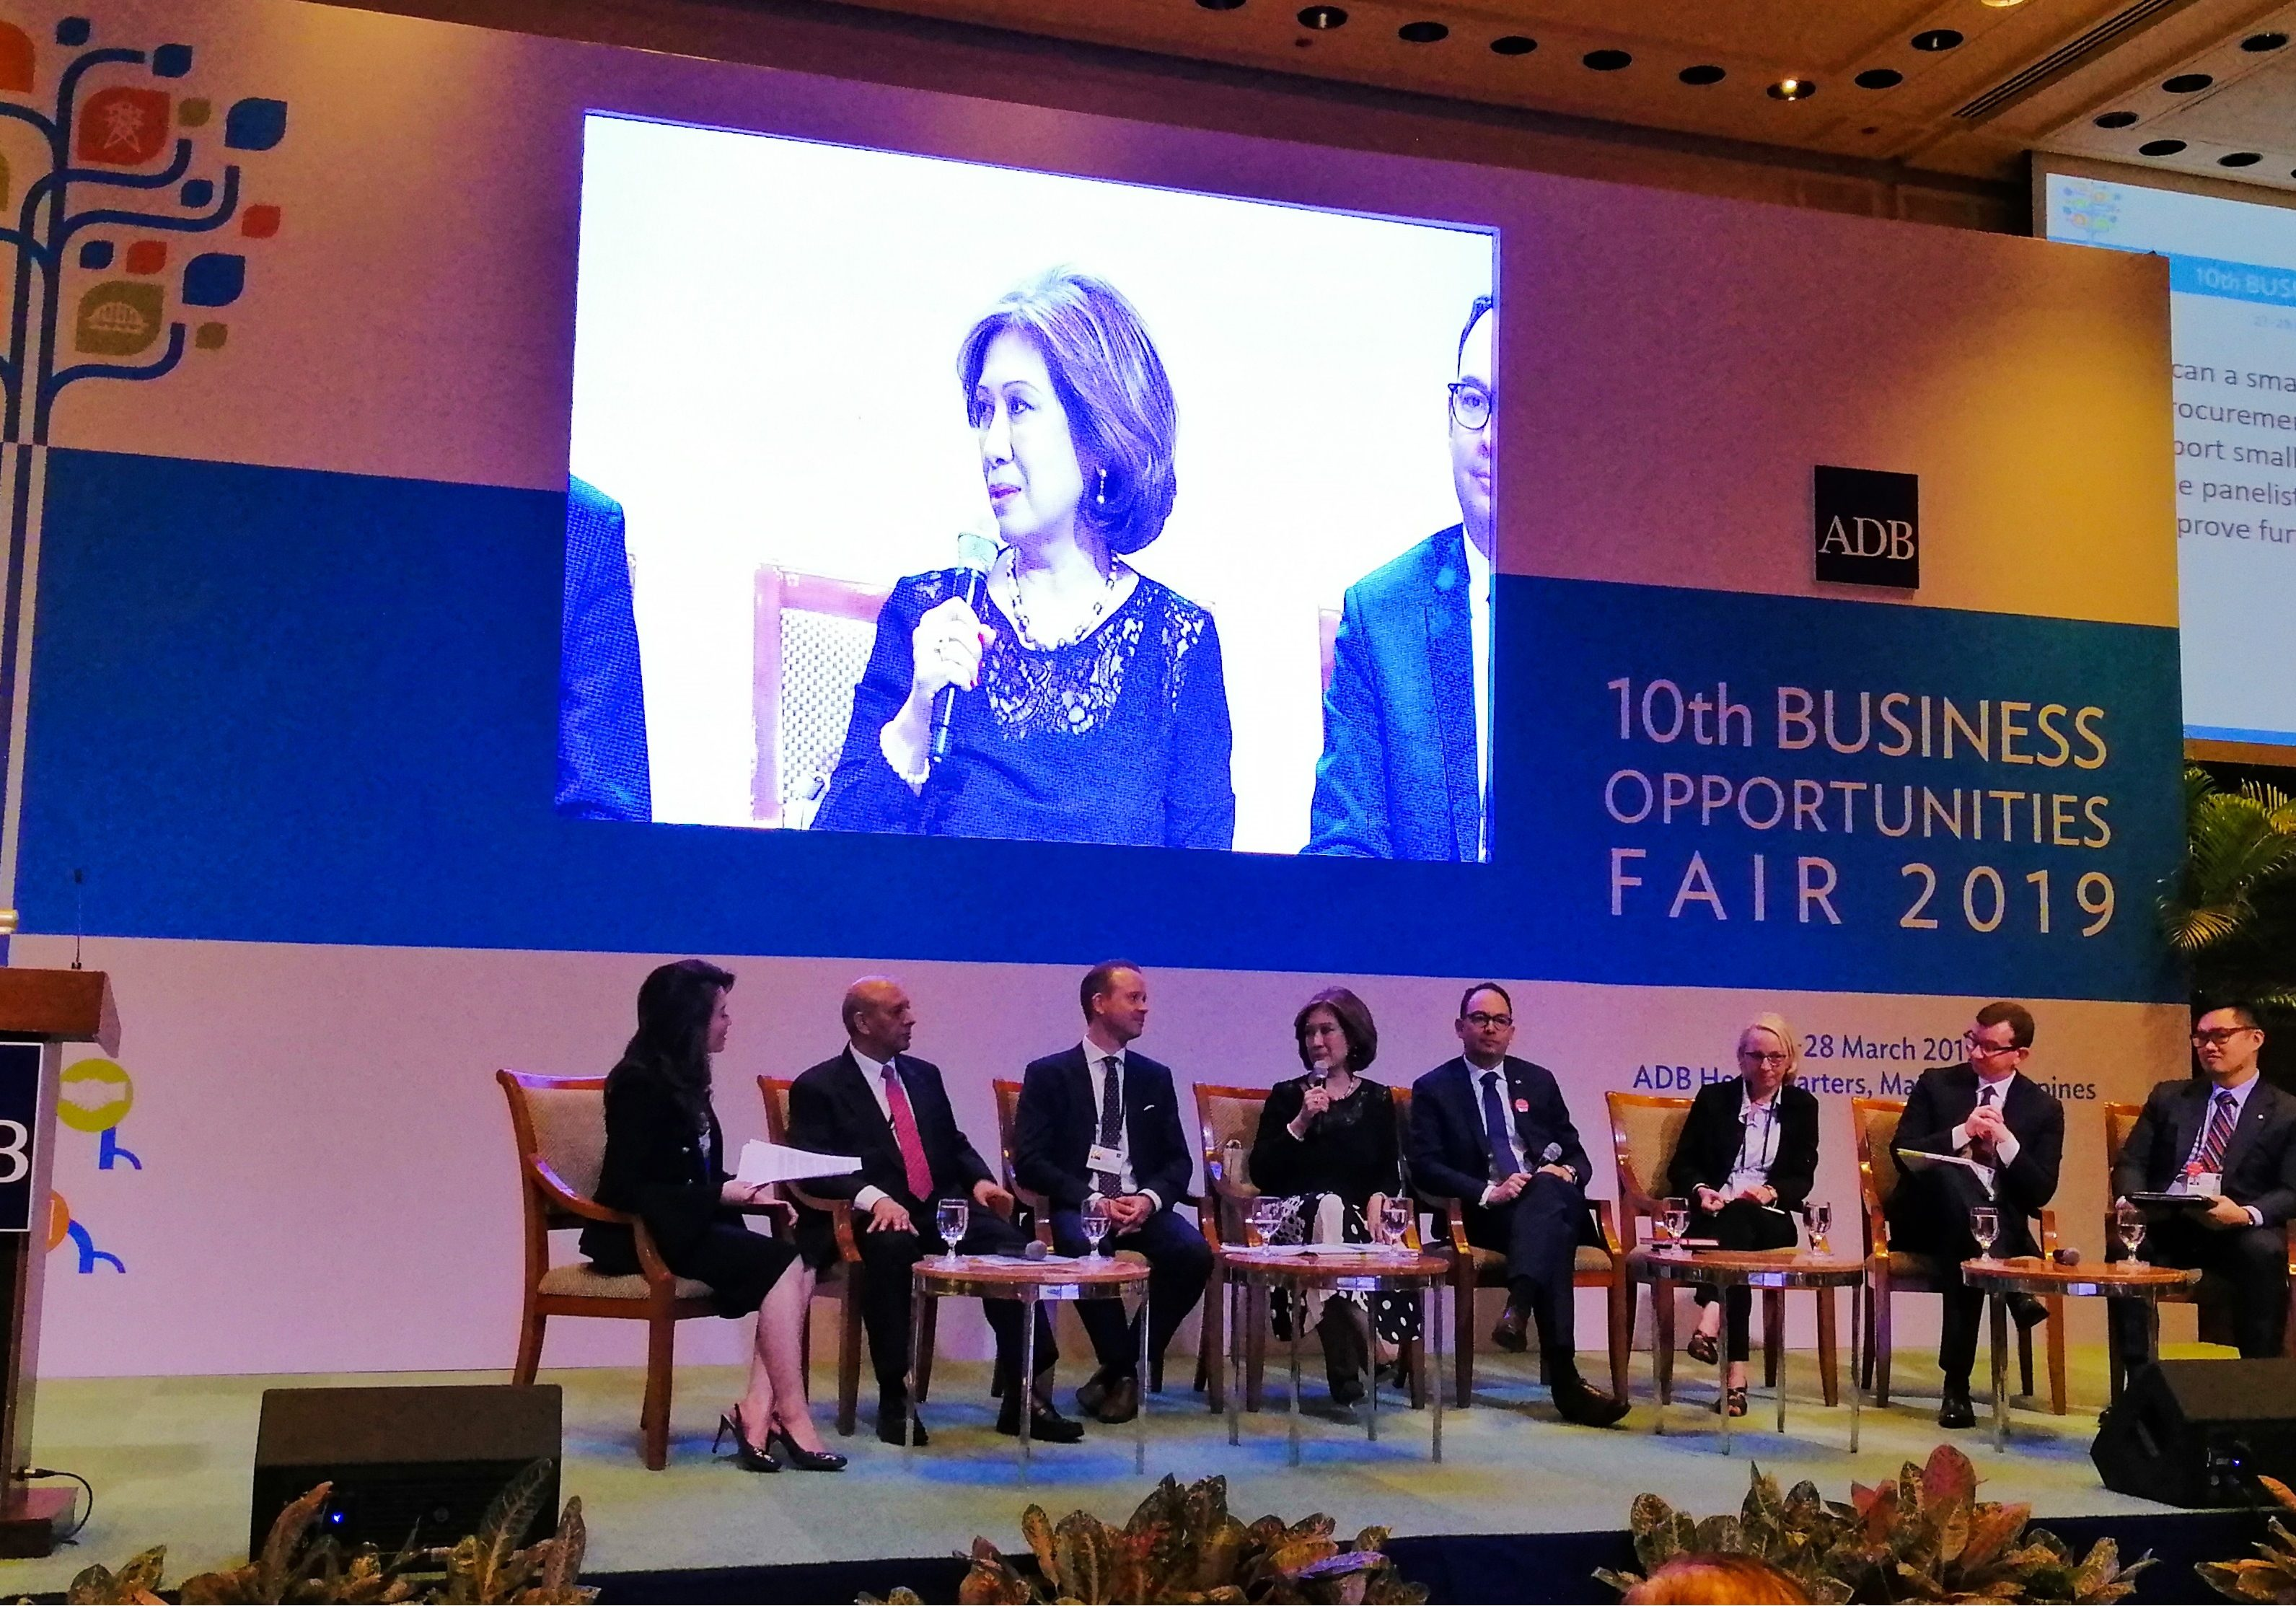 PRIMEX President and CEO Ms. Elvira C. Ablaza was handpicked by the Asian Development Bank (ADB) as one of the speakers for the High Level Panel of the 10th Business Opportunities Fair at the ADB Headquarters on 27 March 2019.